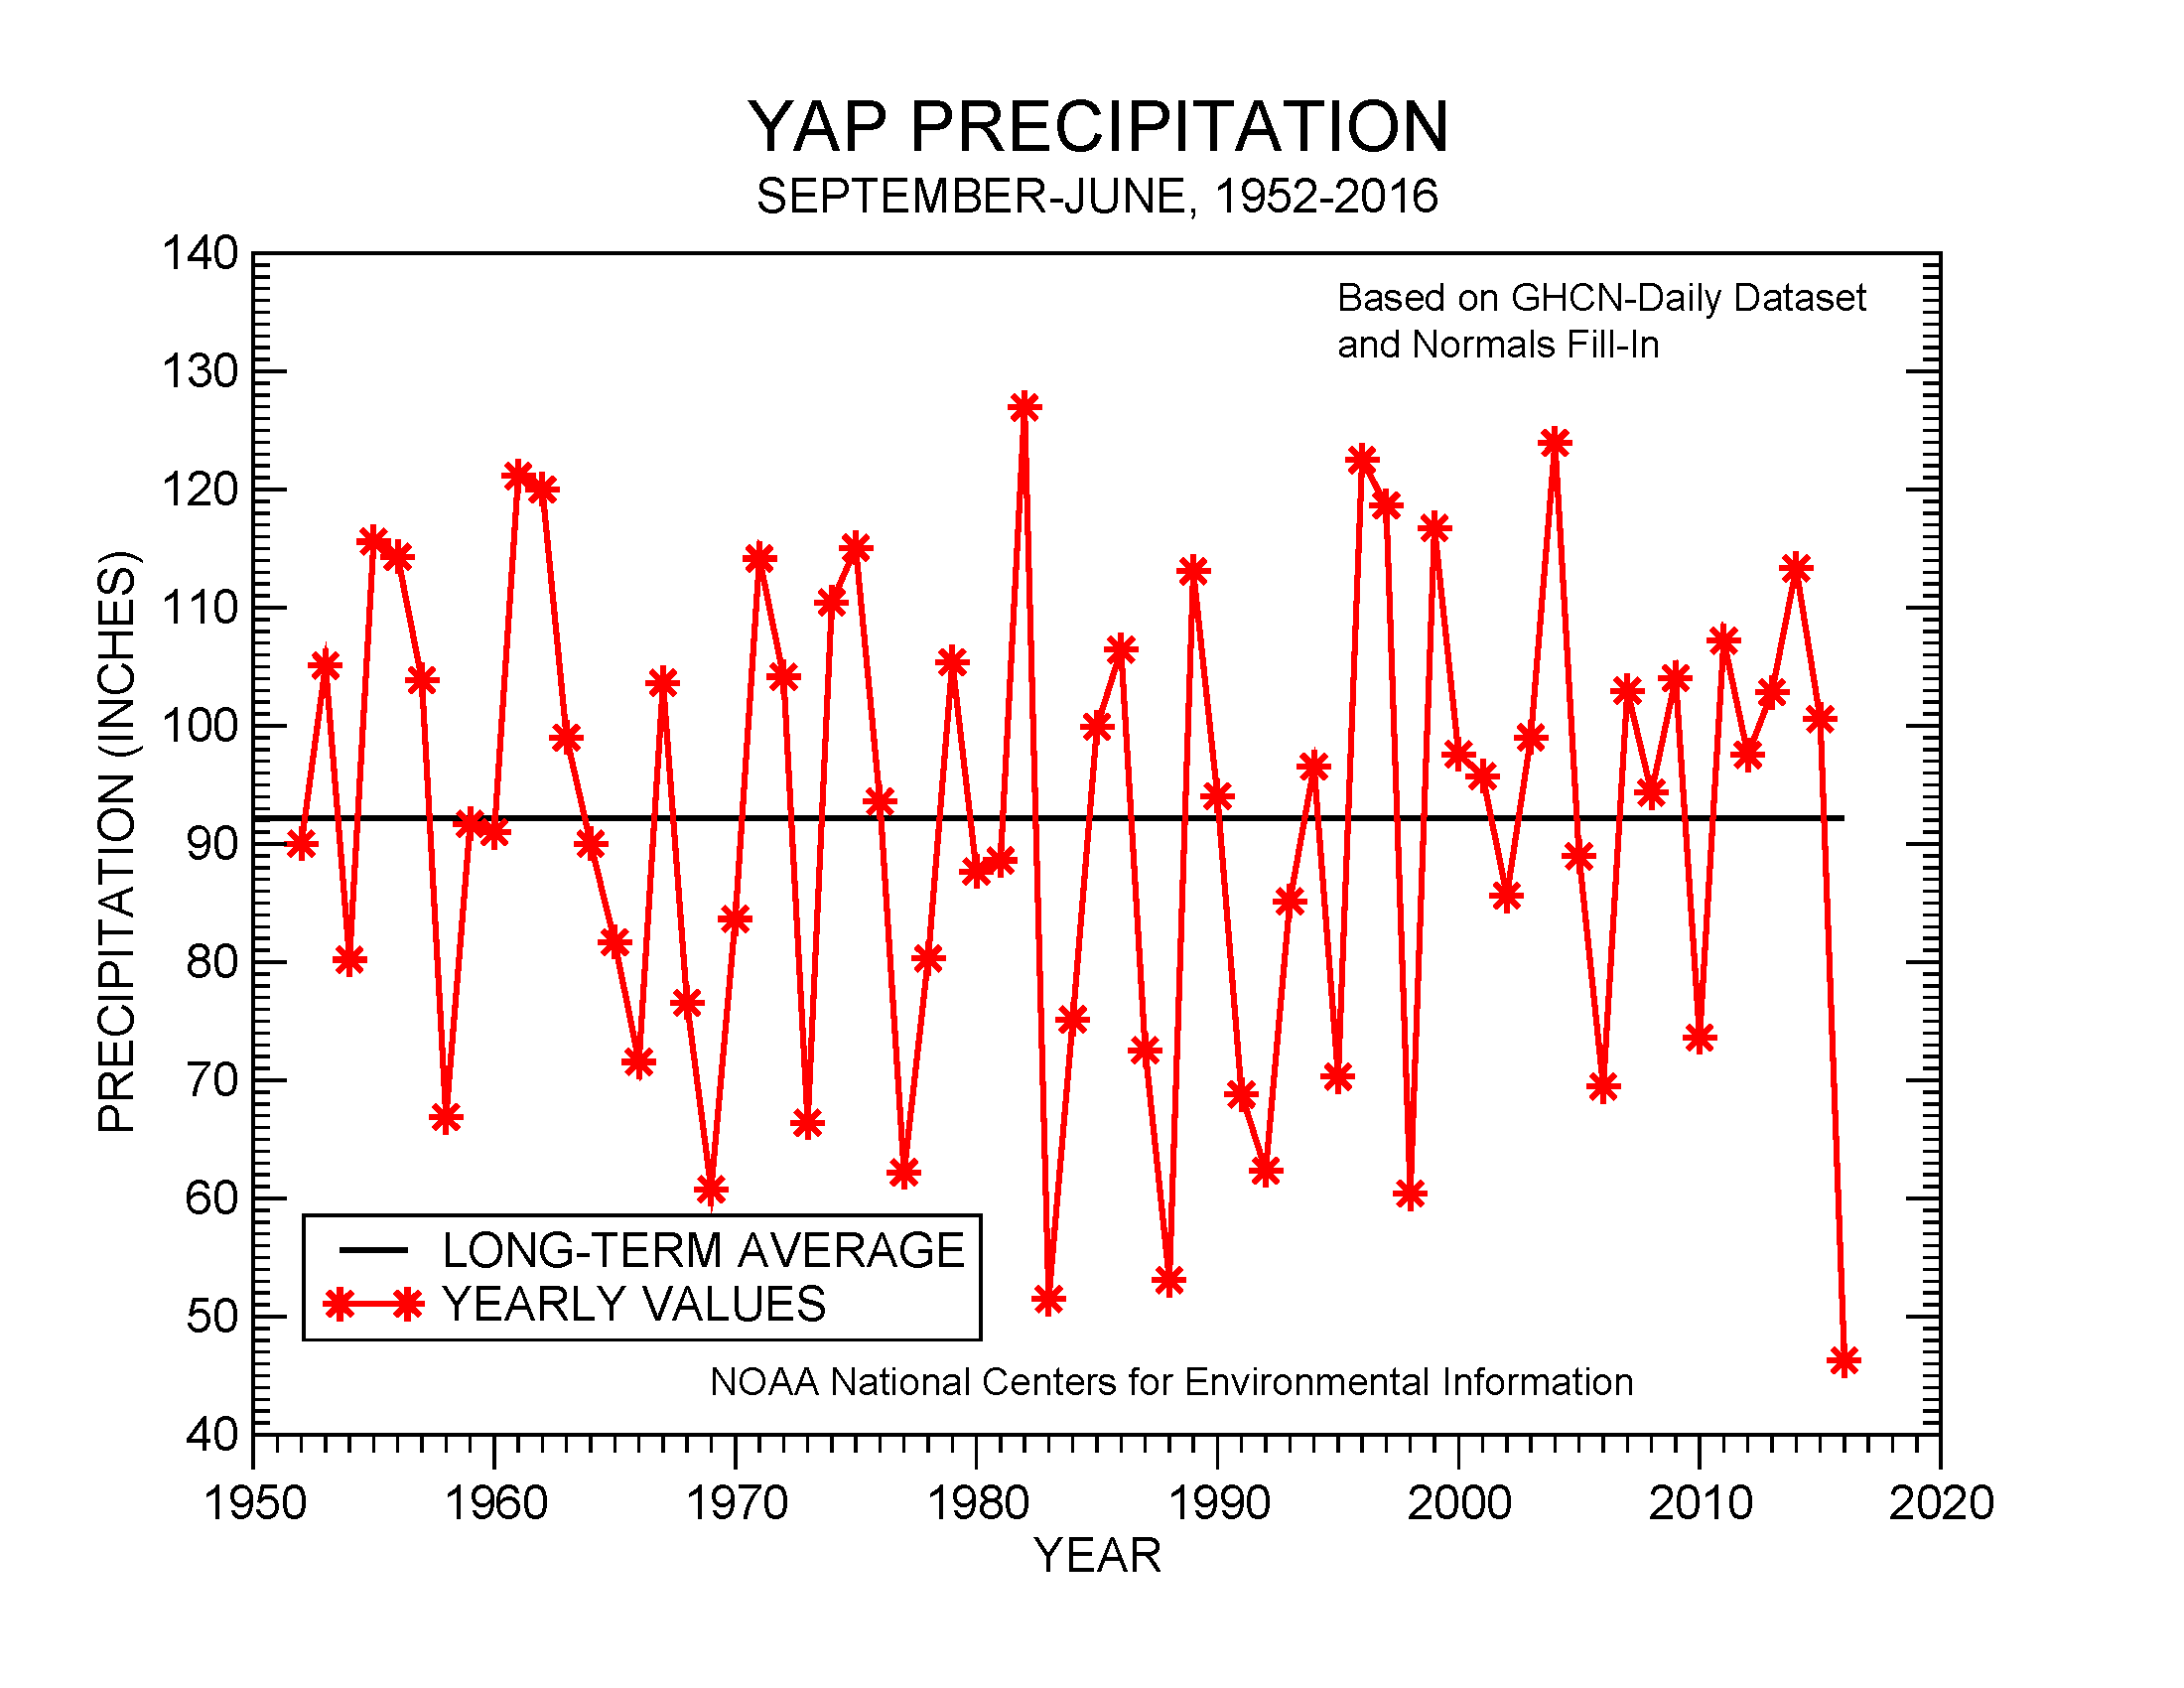 September-June precipitation at Yap, 1952-2016